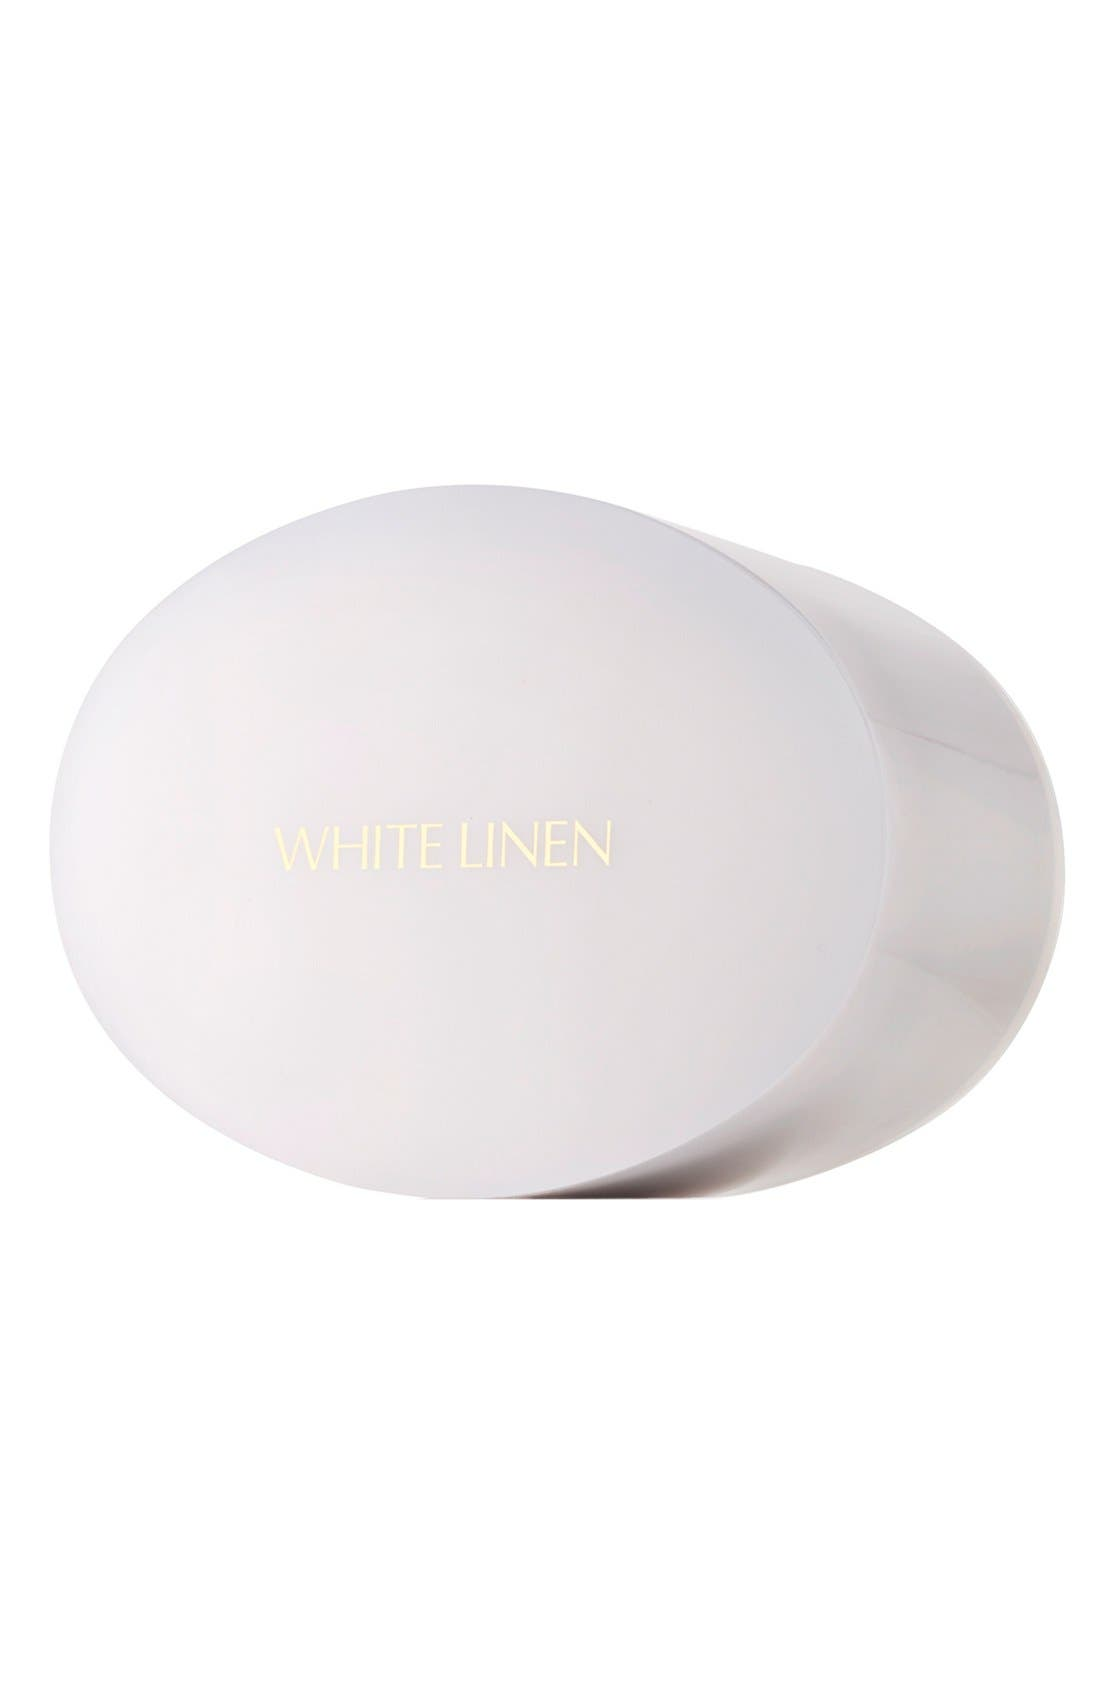 ESTÉE LAUDER White Linen Perfumed Body Powder with Puff, Main, color, 000